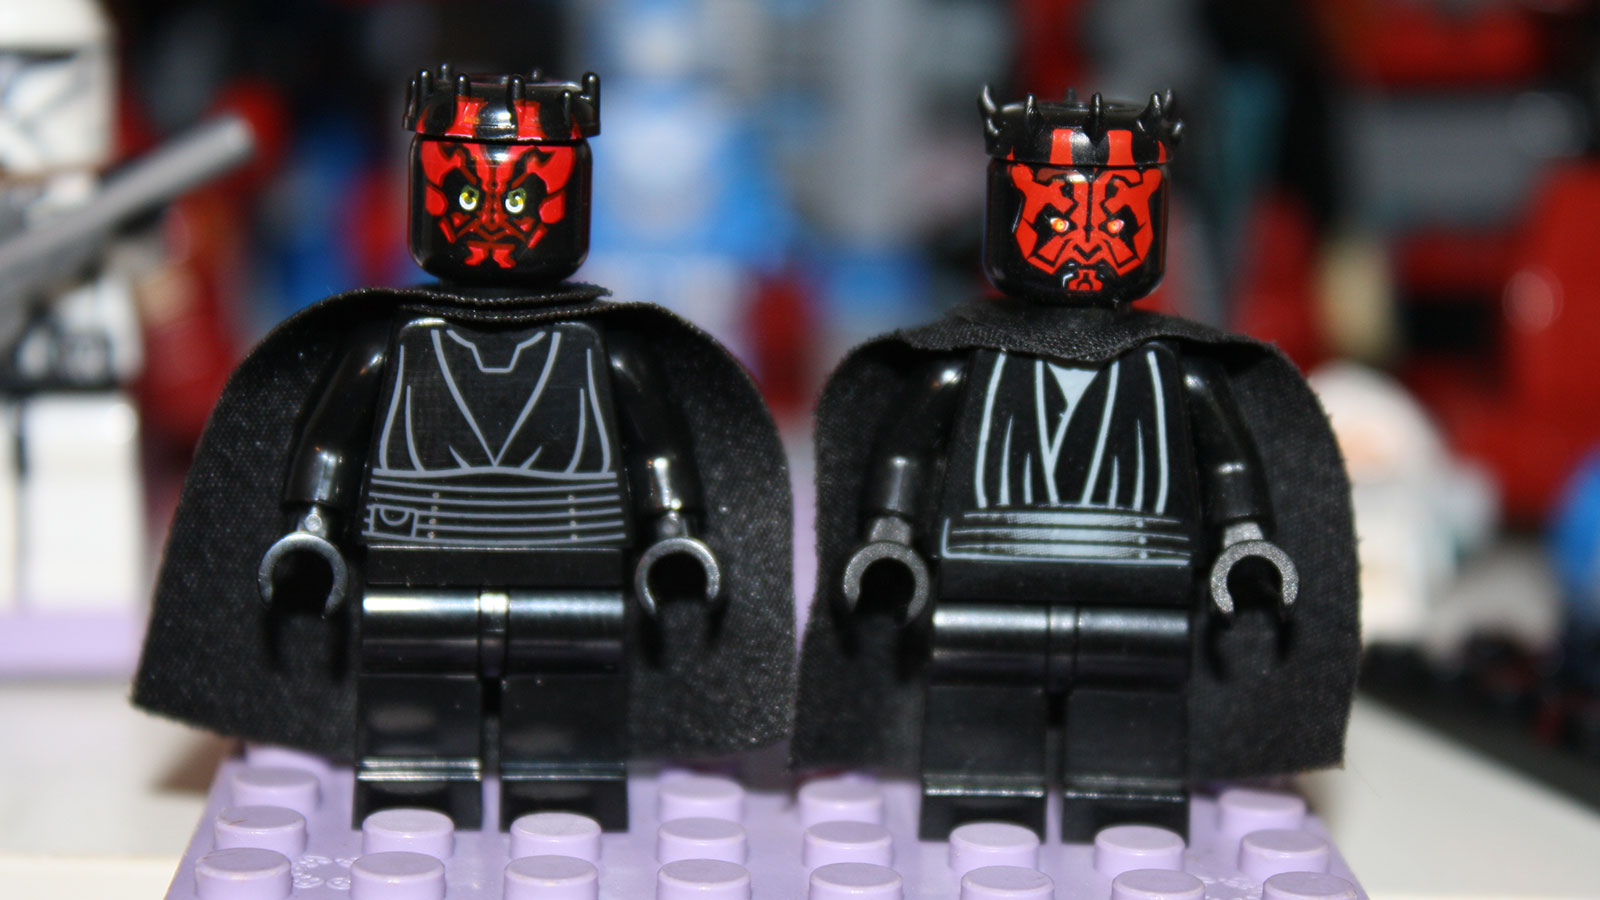 LEGO Clones and Lookalikes - Attack of the Clones